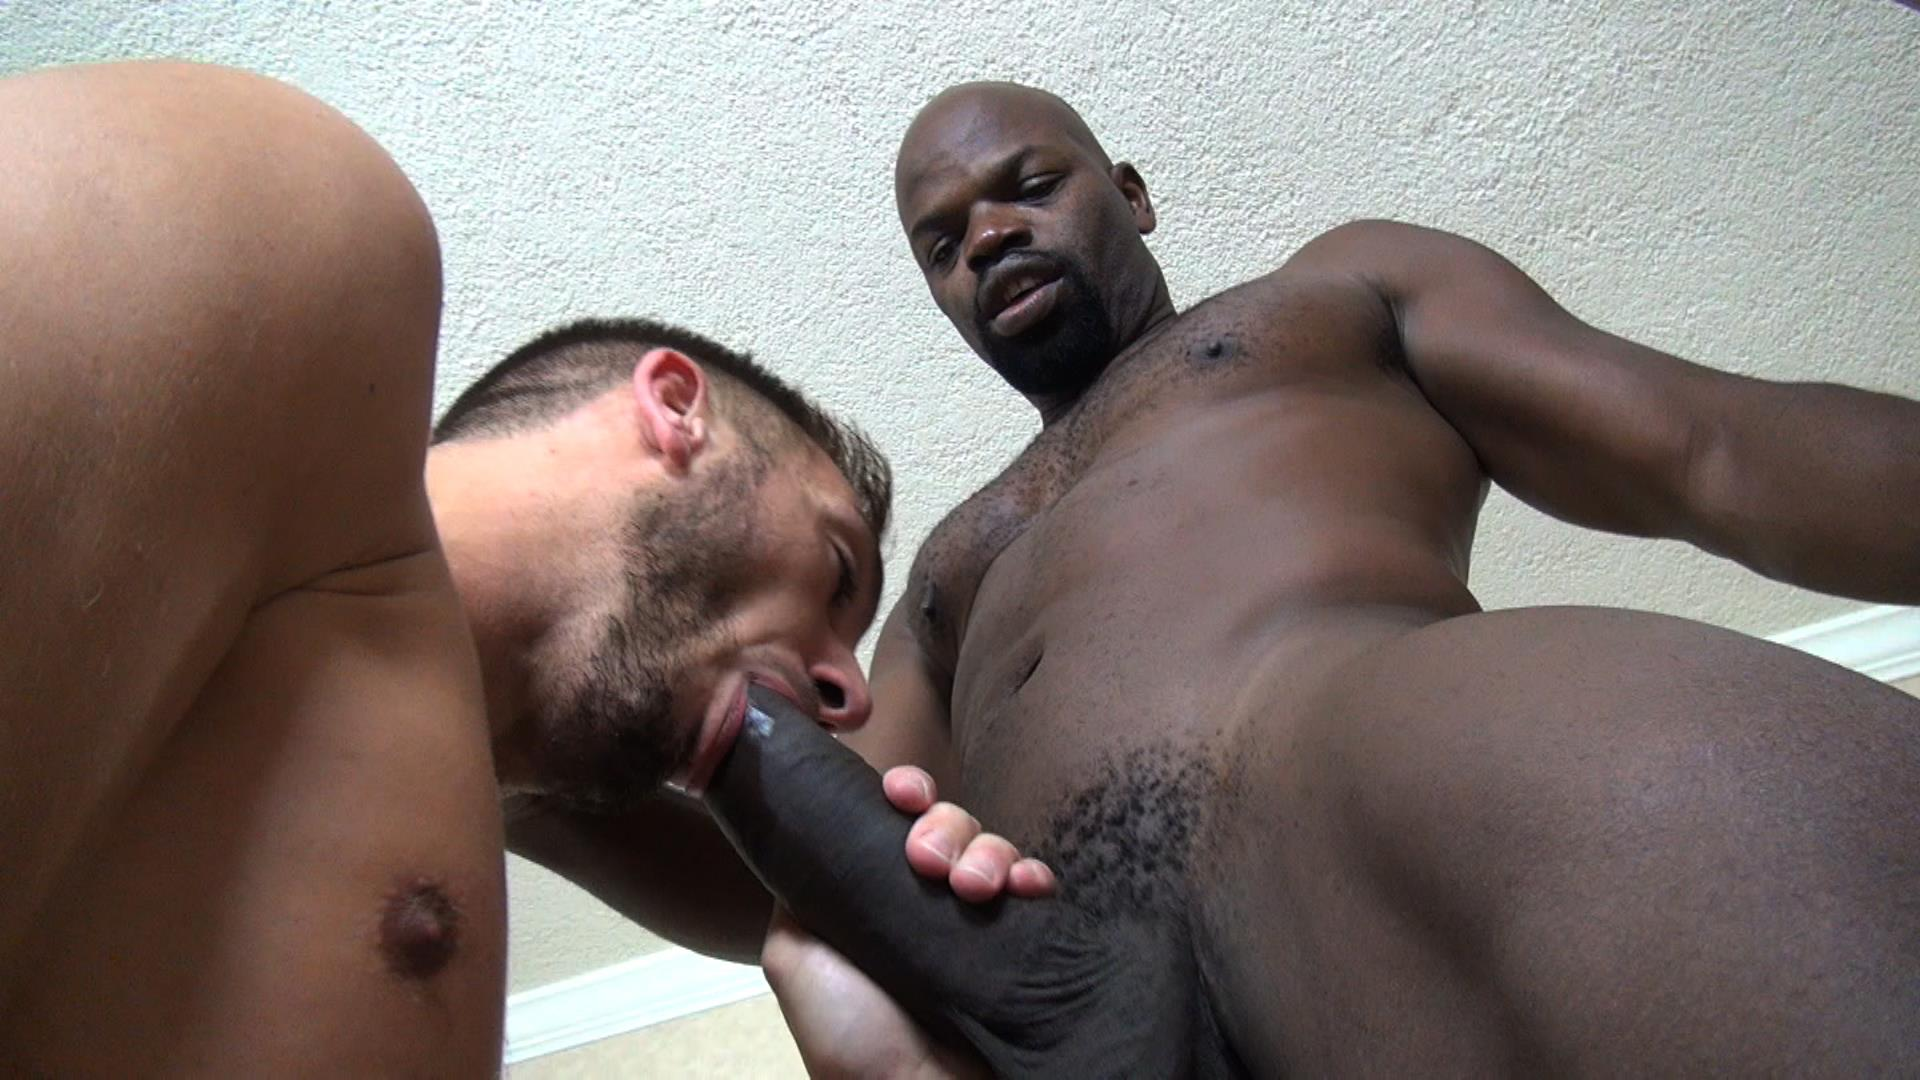 Gay interracial gay porn